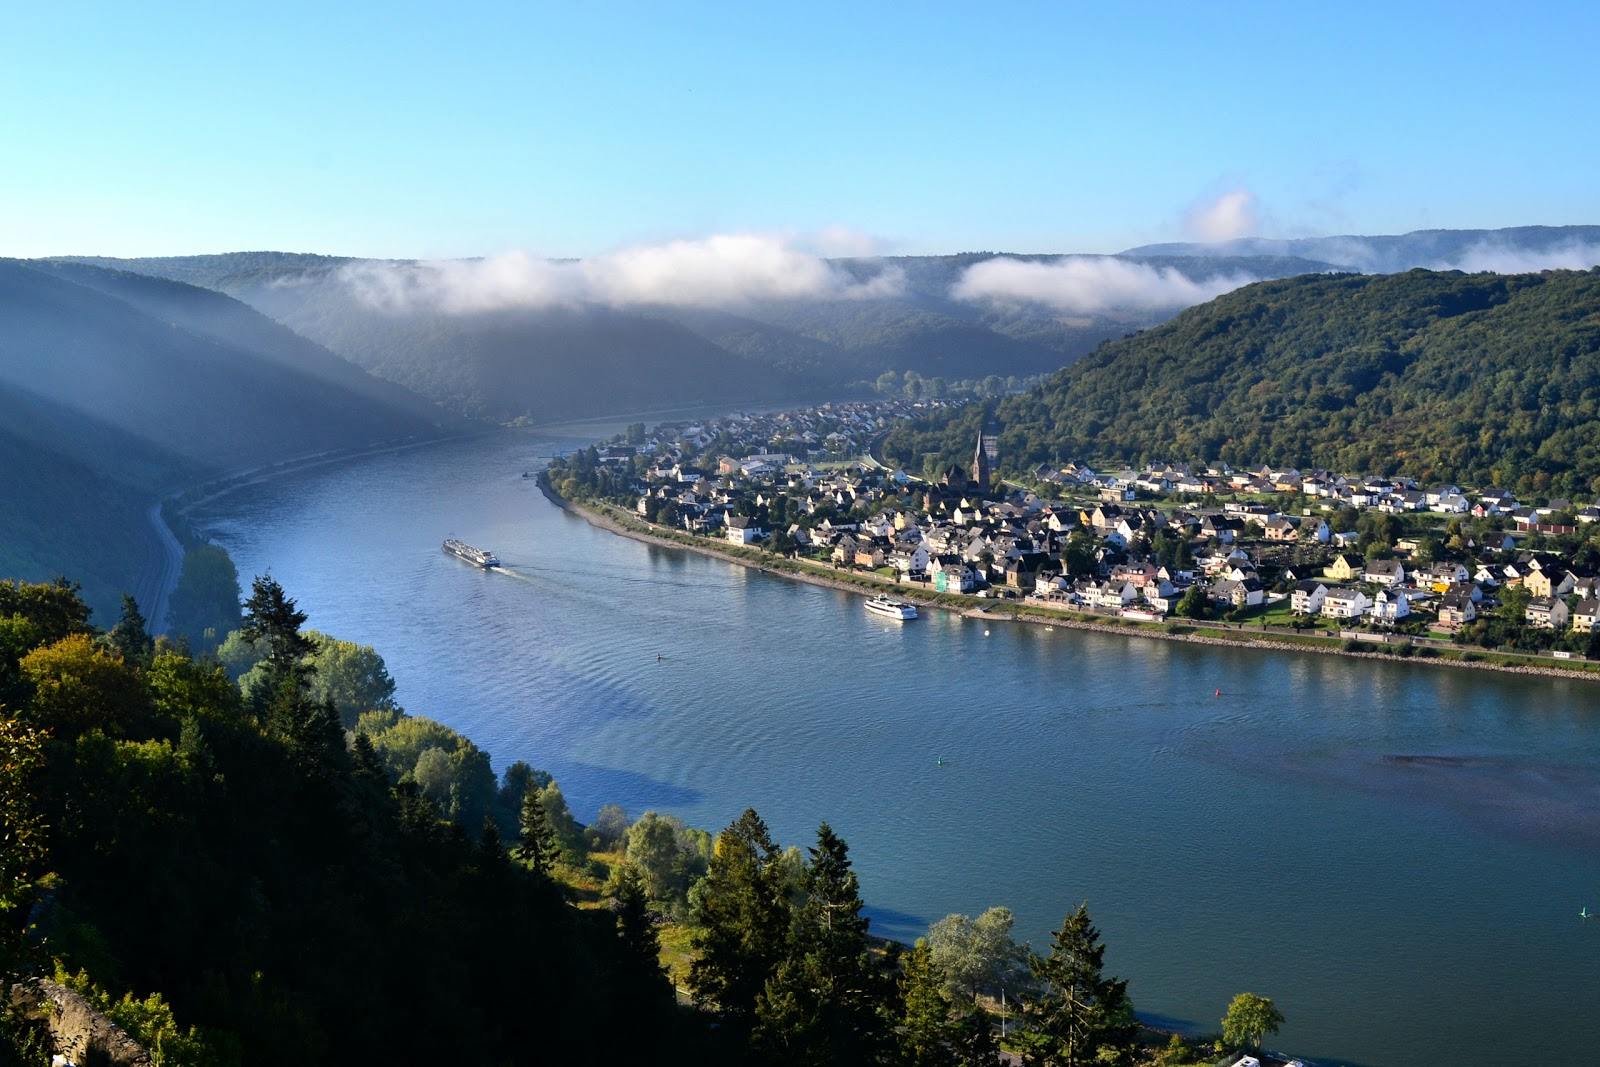 A voyage to the past and present on the Rhine River in Germany. This view of the River and the village of Spay on the opposite bank was taken from Marksburg Castle. All photography is the property of EuroTravelogue™. Unauthorized use is prohibited.